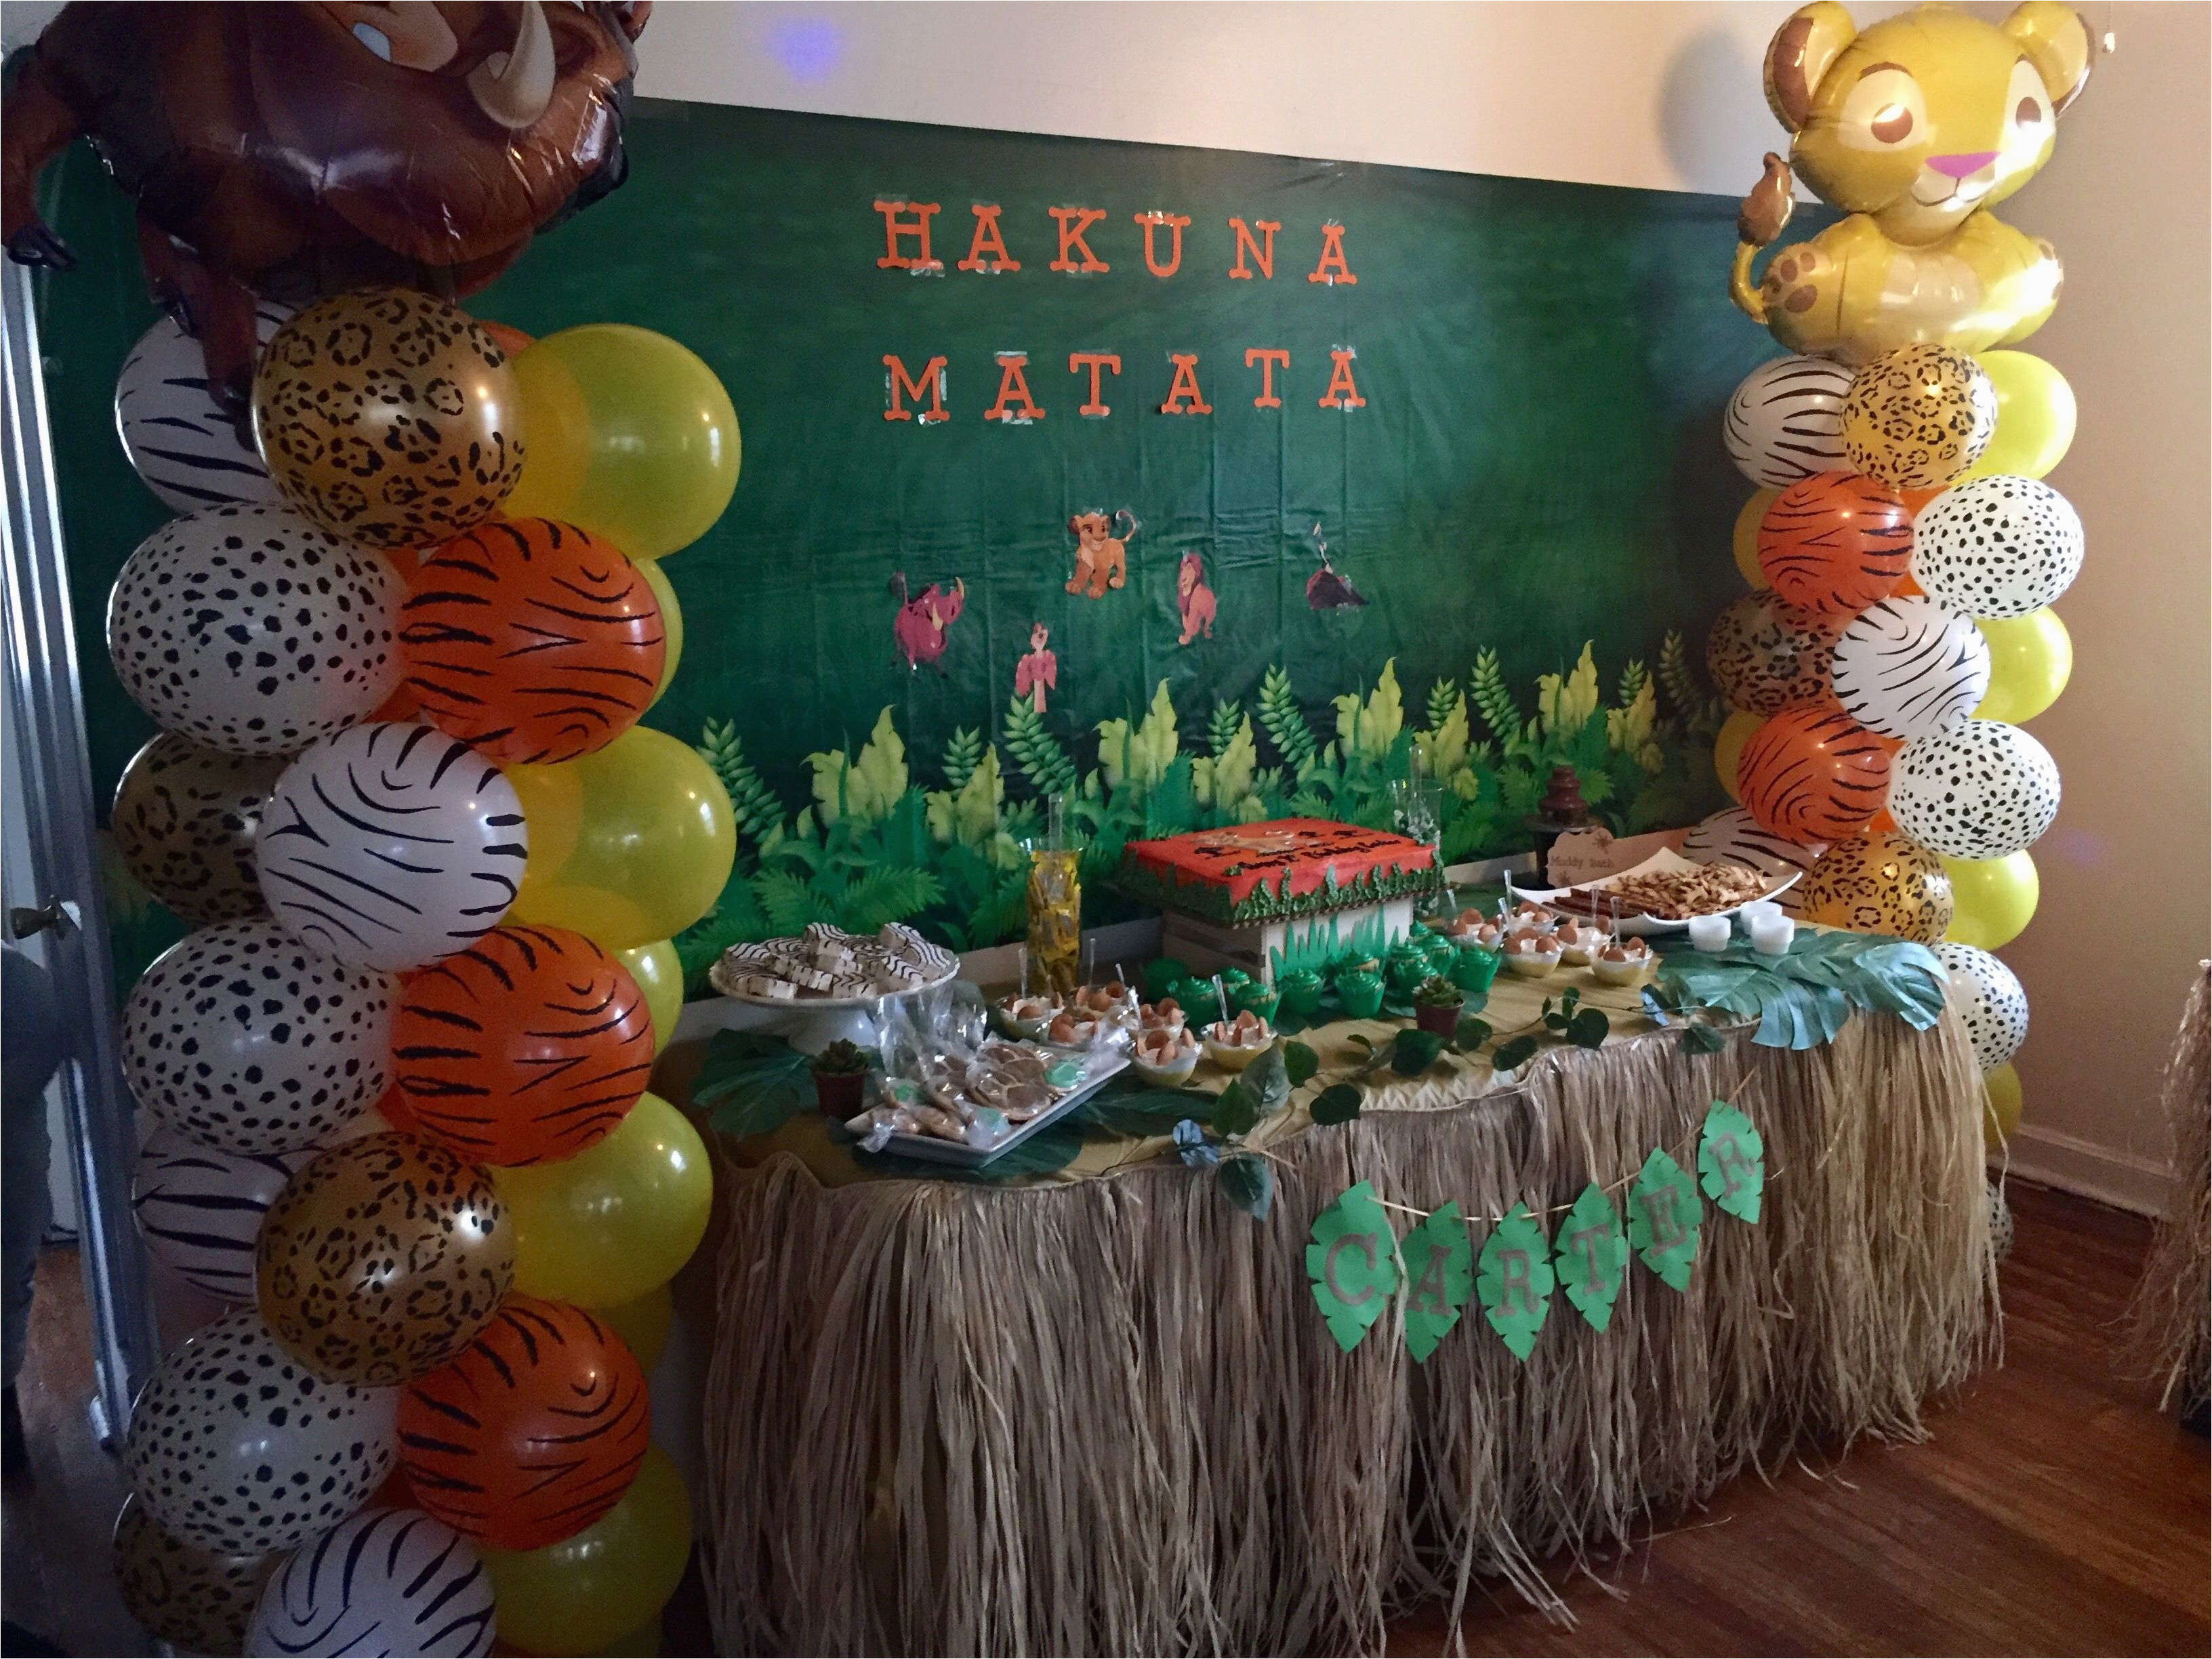 Lion King Birthday Party Decorations the Lion King 39 S First Birthday Party Candy Table Idea